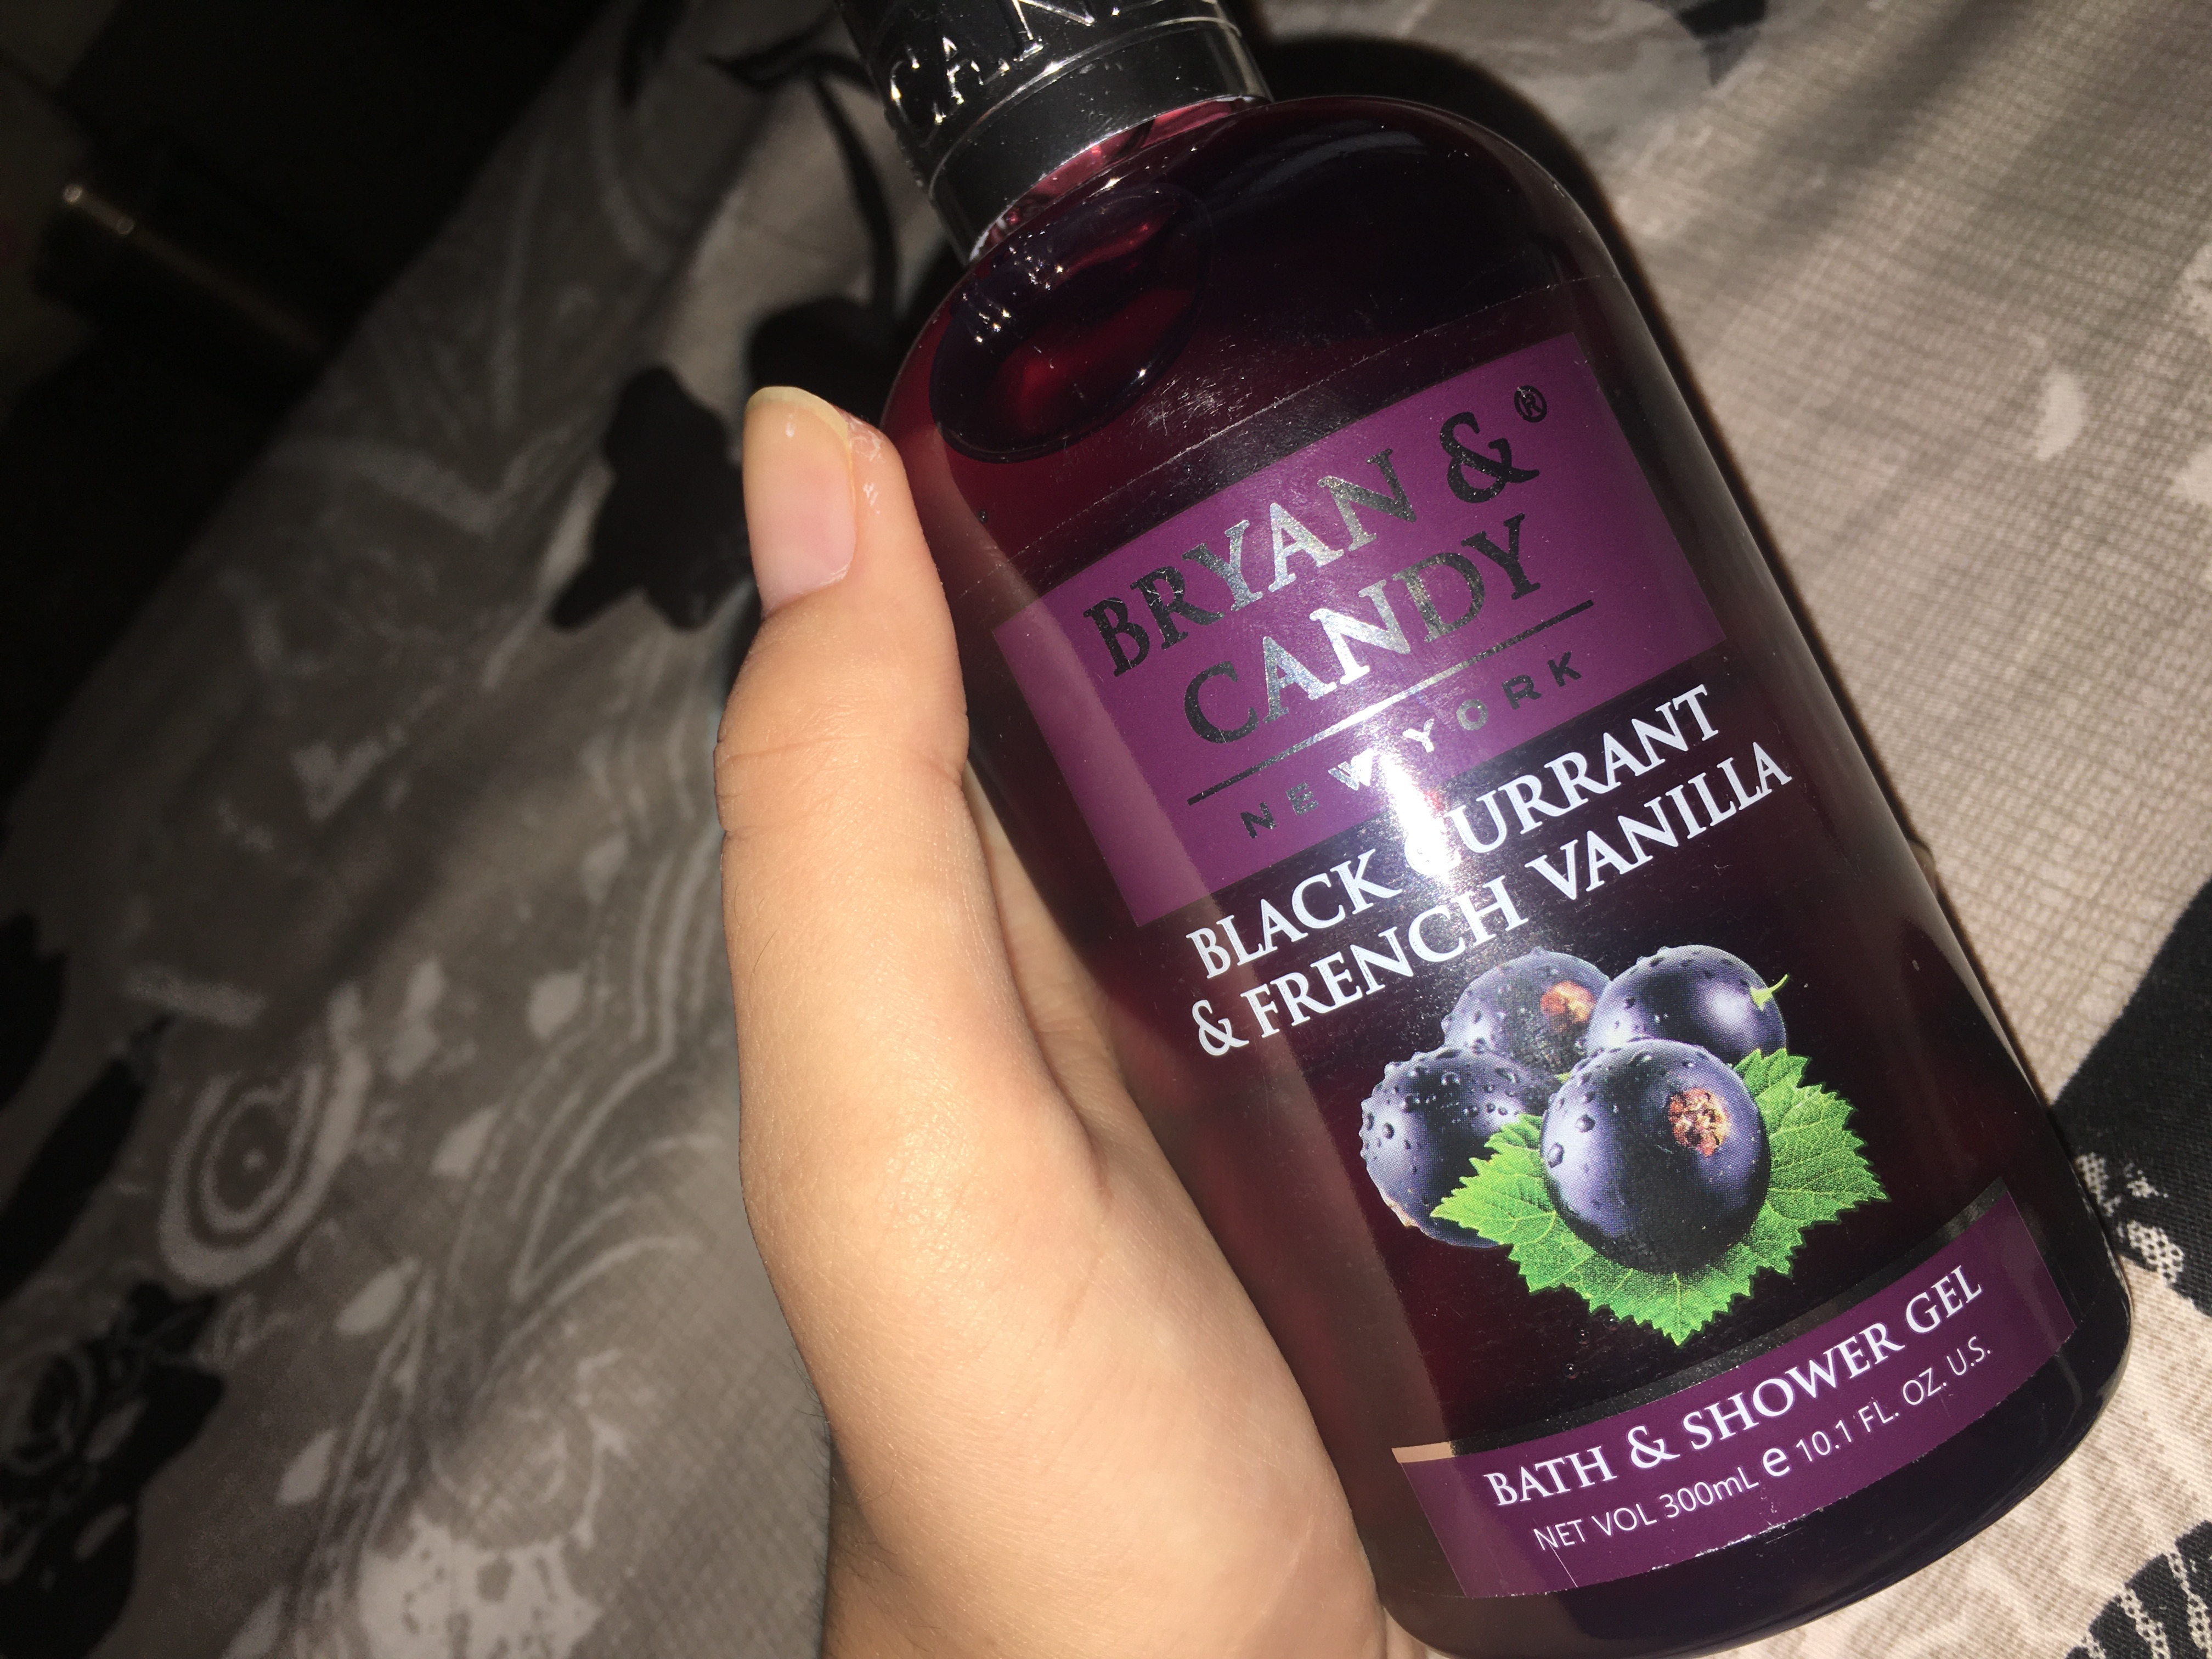 Bryan & Candy New York Black Currant and French Vanilla Shower Gel-So obsessed with it!-By muskan_gangwani